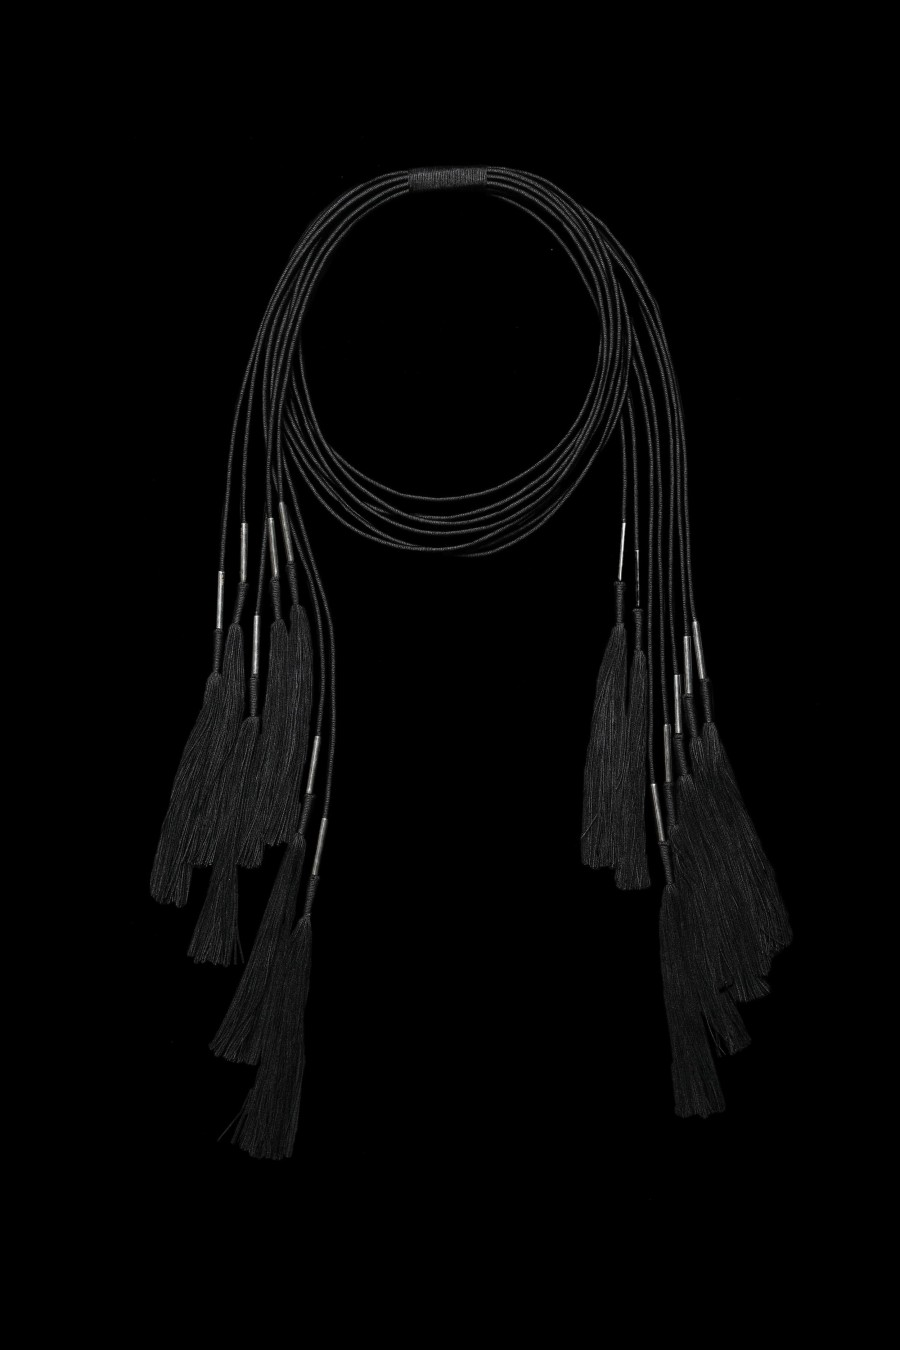 Black thread and stainless steel